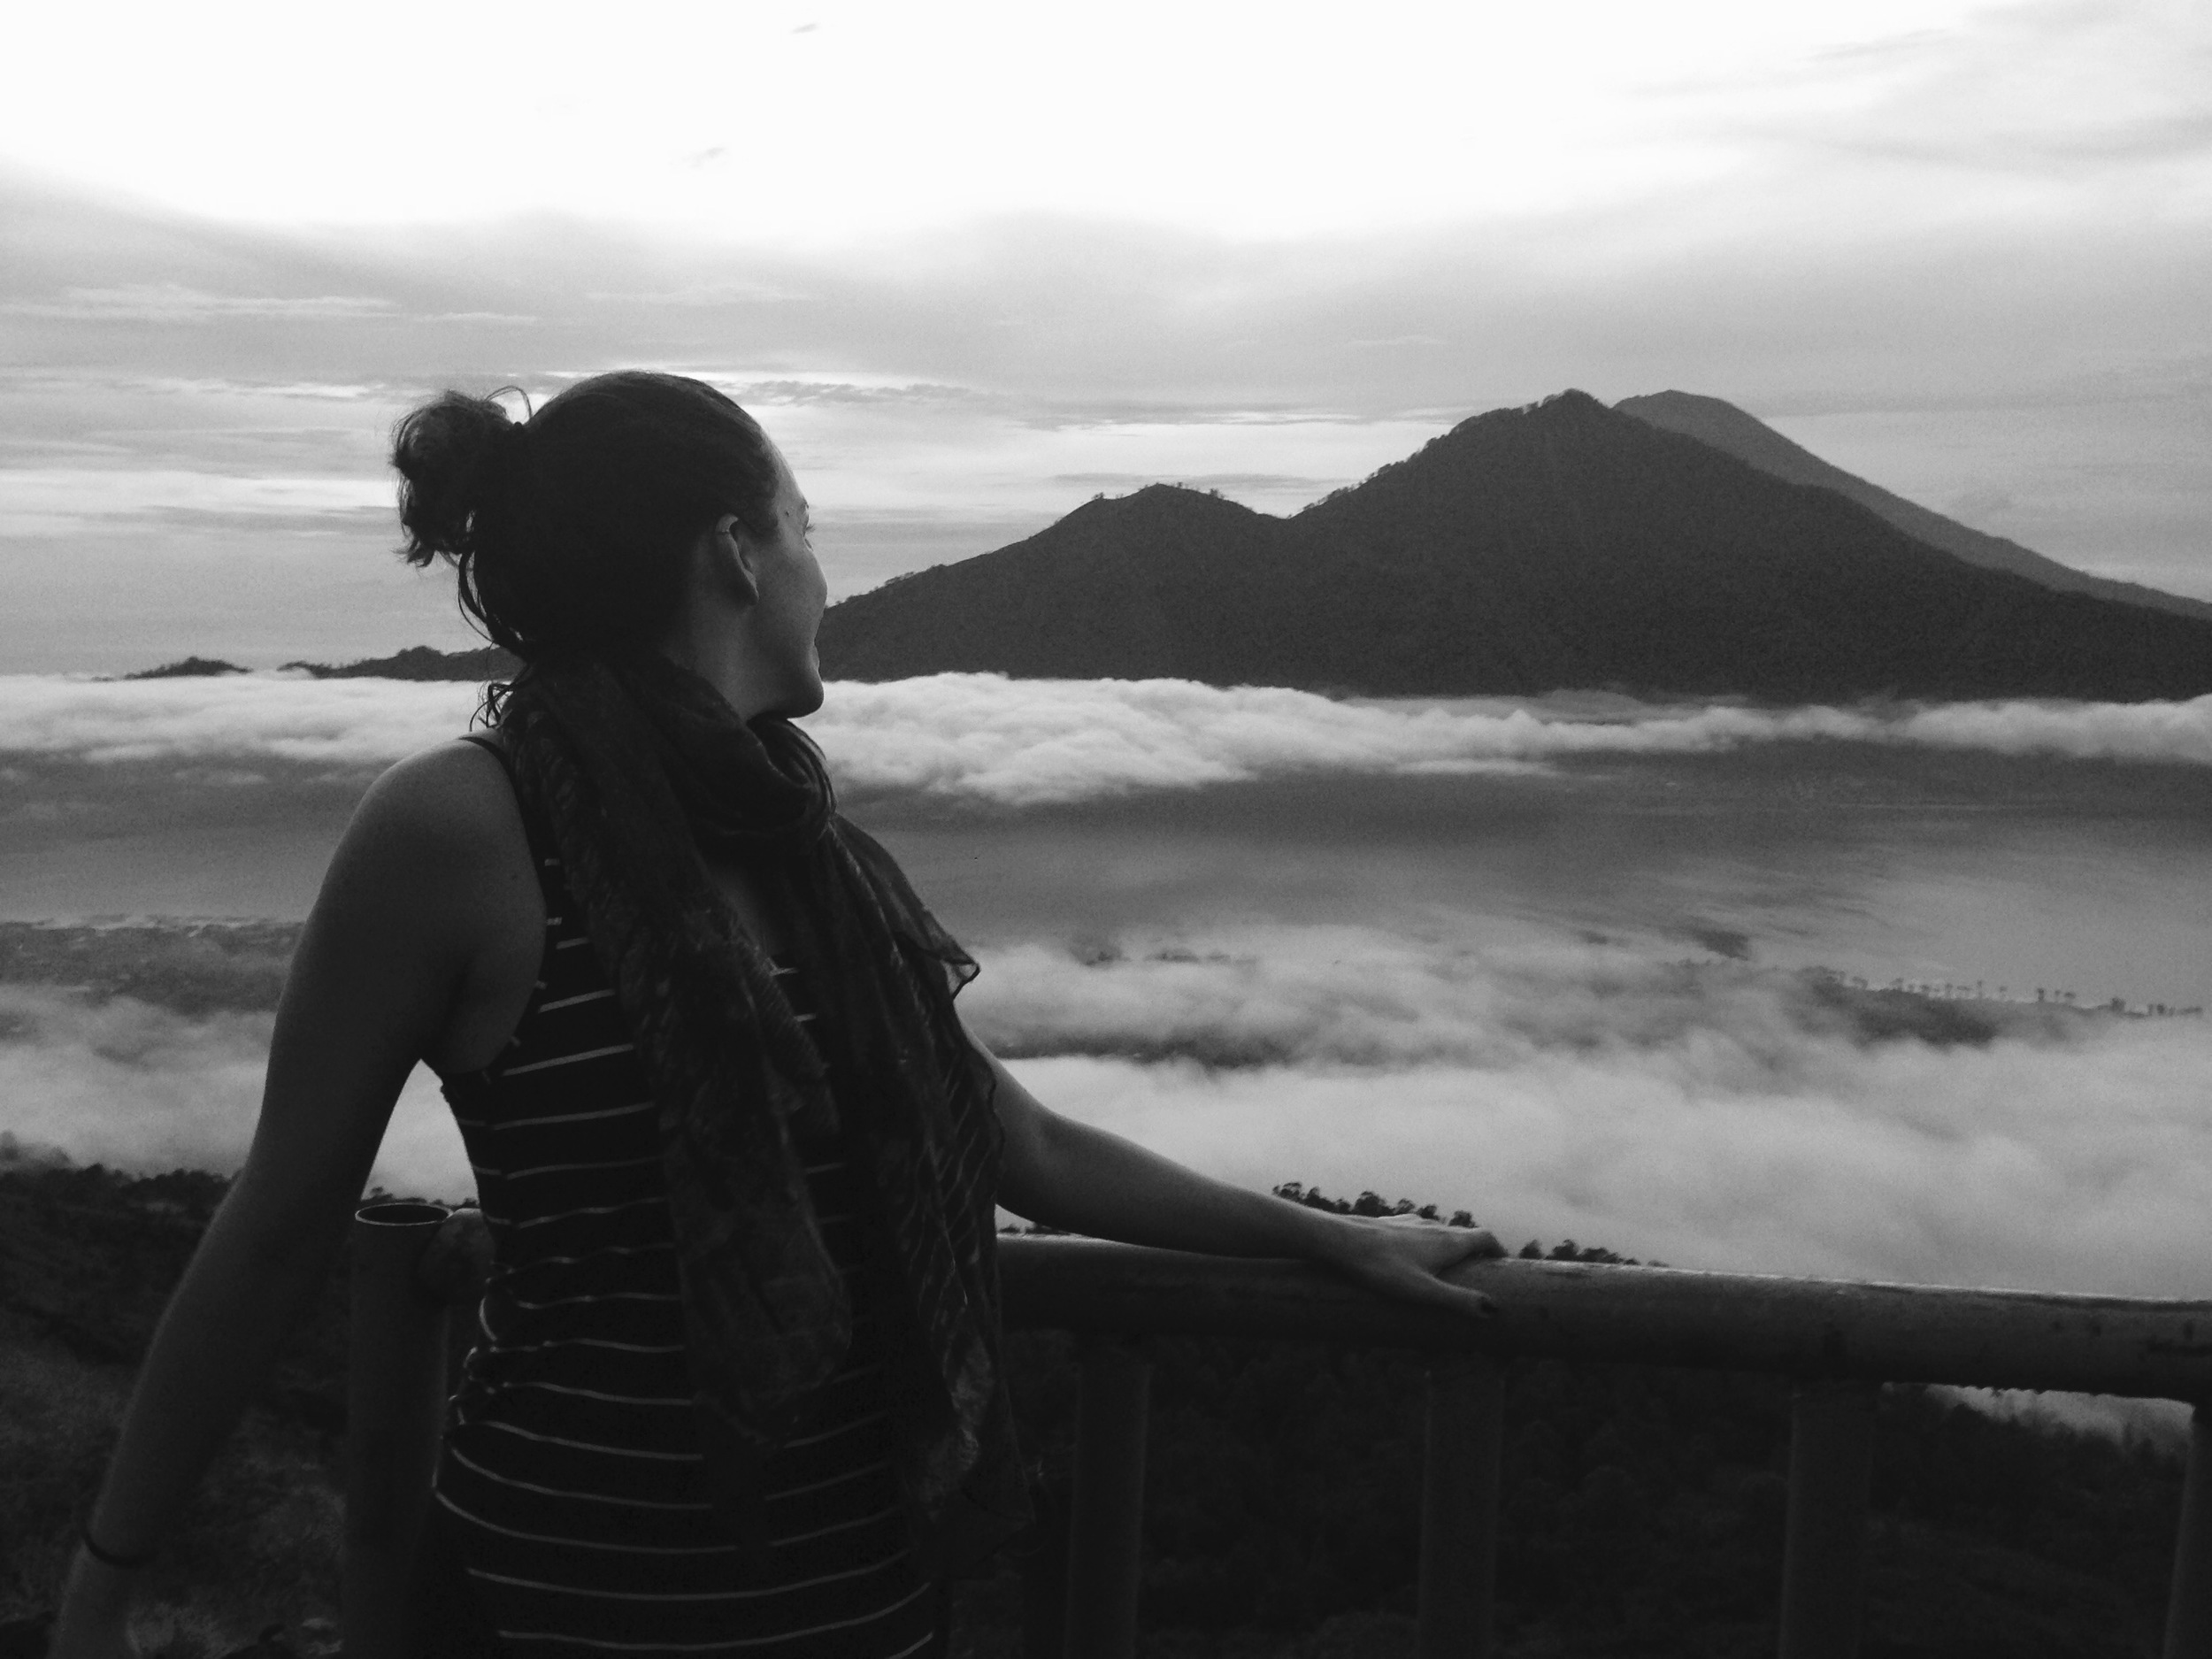 View from the top of Mount Batur, an active volcano in Bali, 2014.